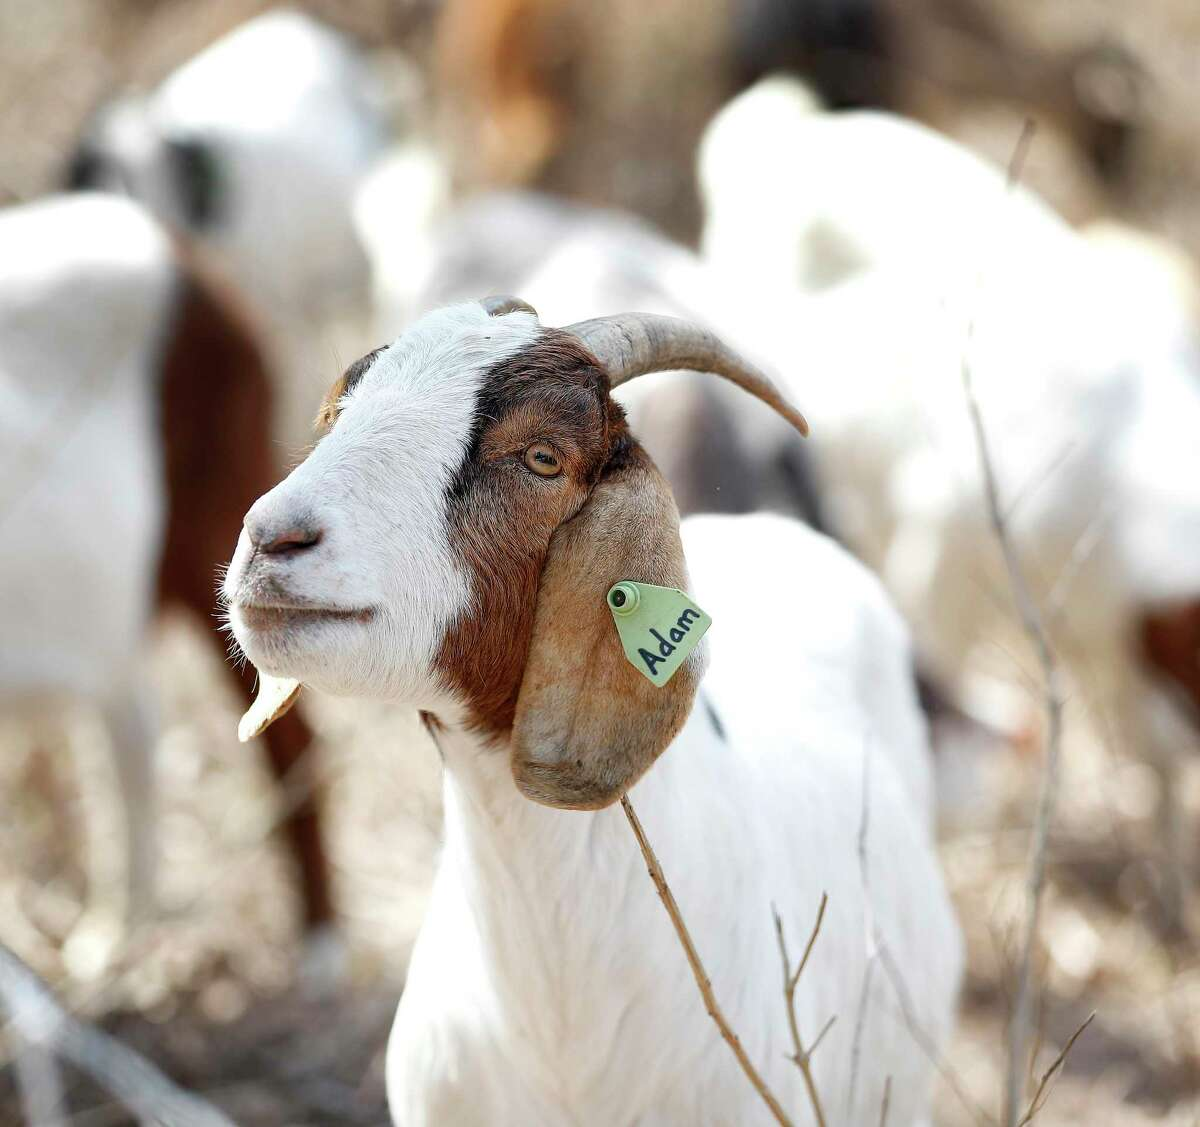 """Adam, one of the 142 goats from Rent-A-Ruminant Texas """"mow"""" the 2.6 acre Meadow area of the Houston Arboretum & Nature Center, Monday, March 8, 2021, in Houston. The goats, are grazing on many varieties of grasses and plants, and are an effective """"eco-friendly solution"""" to vegetation management that negates the need for commercial mowing and/or herbicides. The goats also had successful stints at the Arboretum in October and November of 2020, and will be on site working through Thursday."""